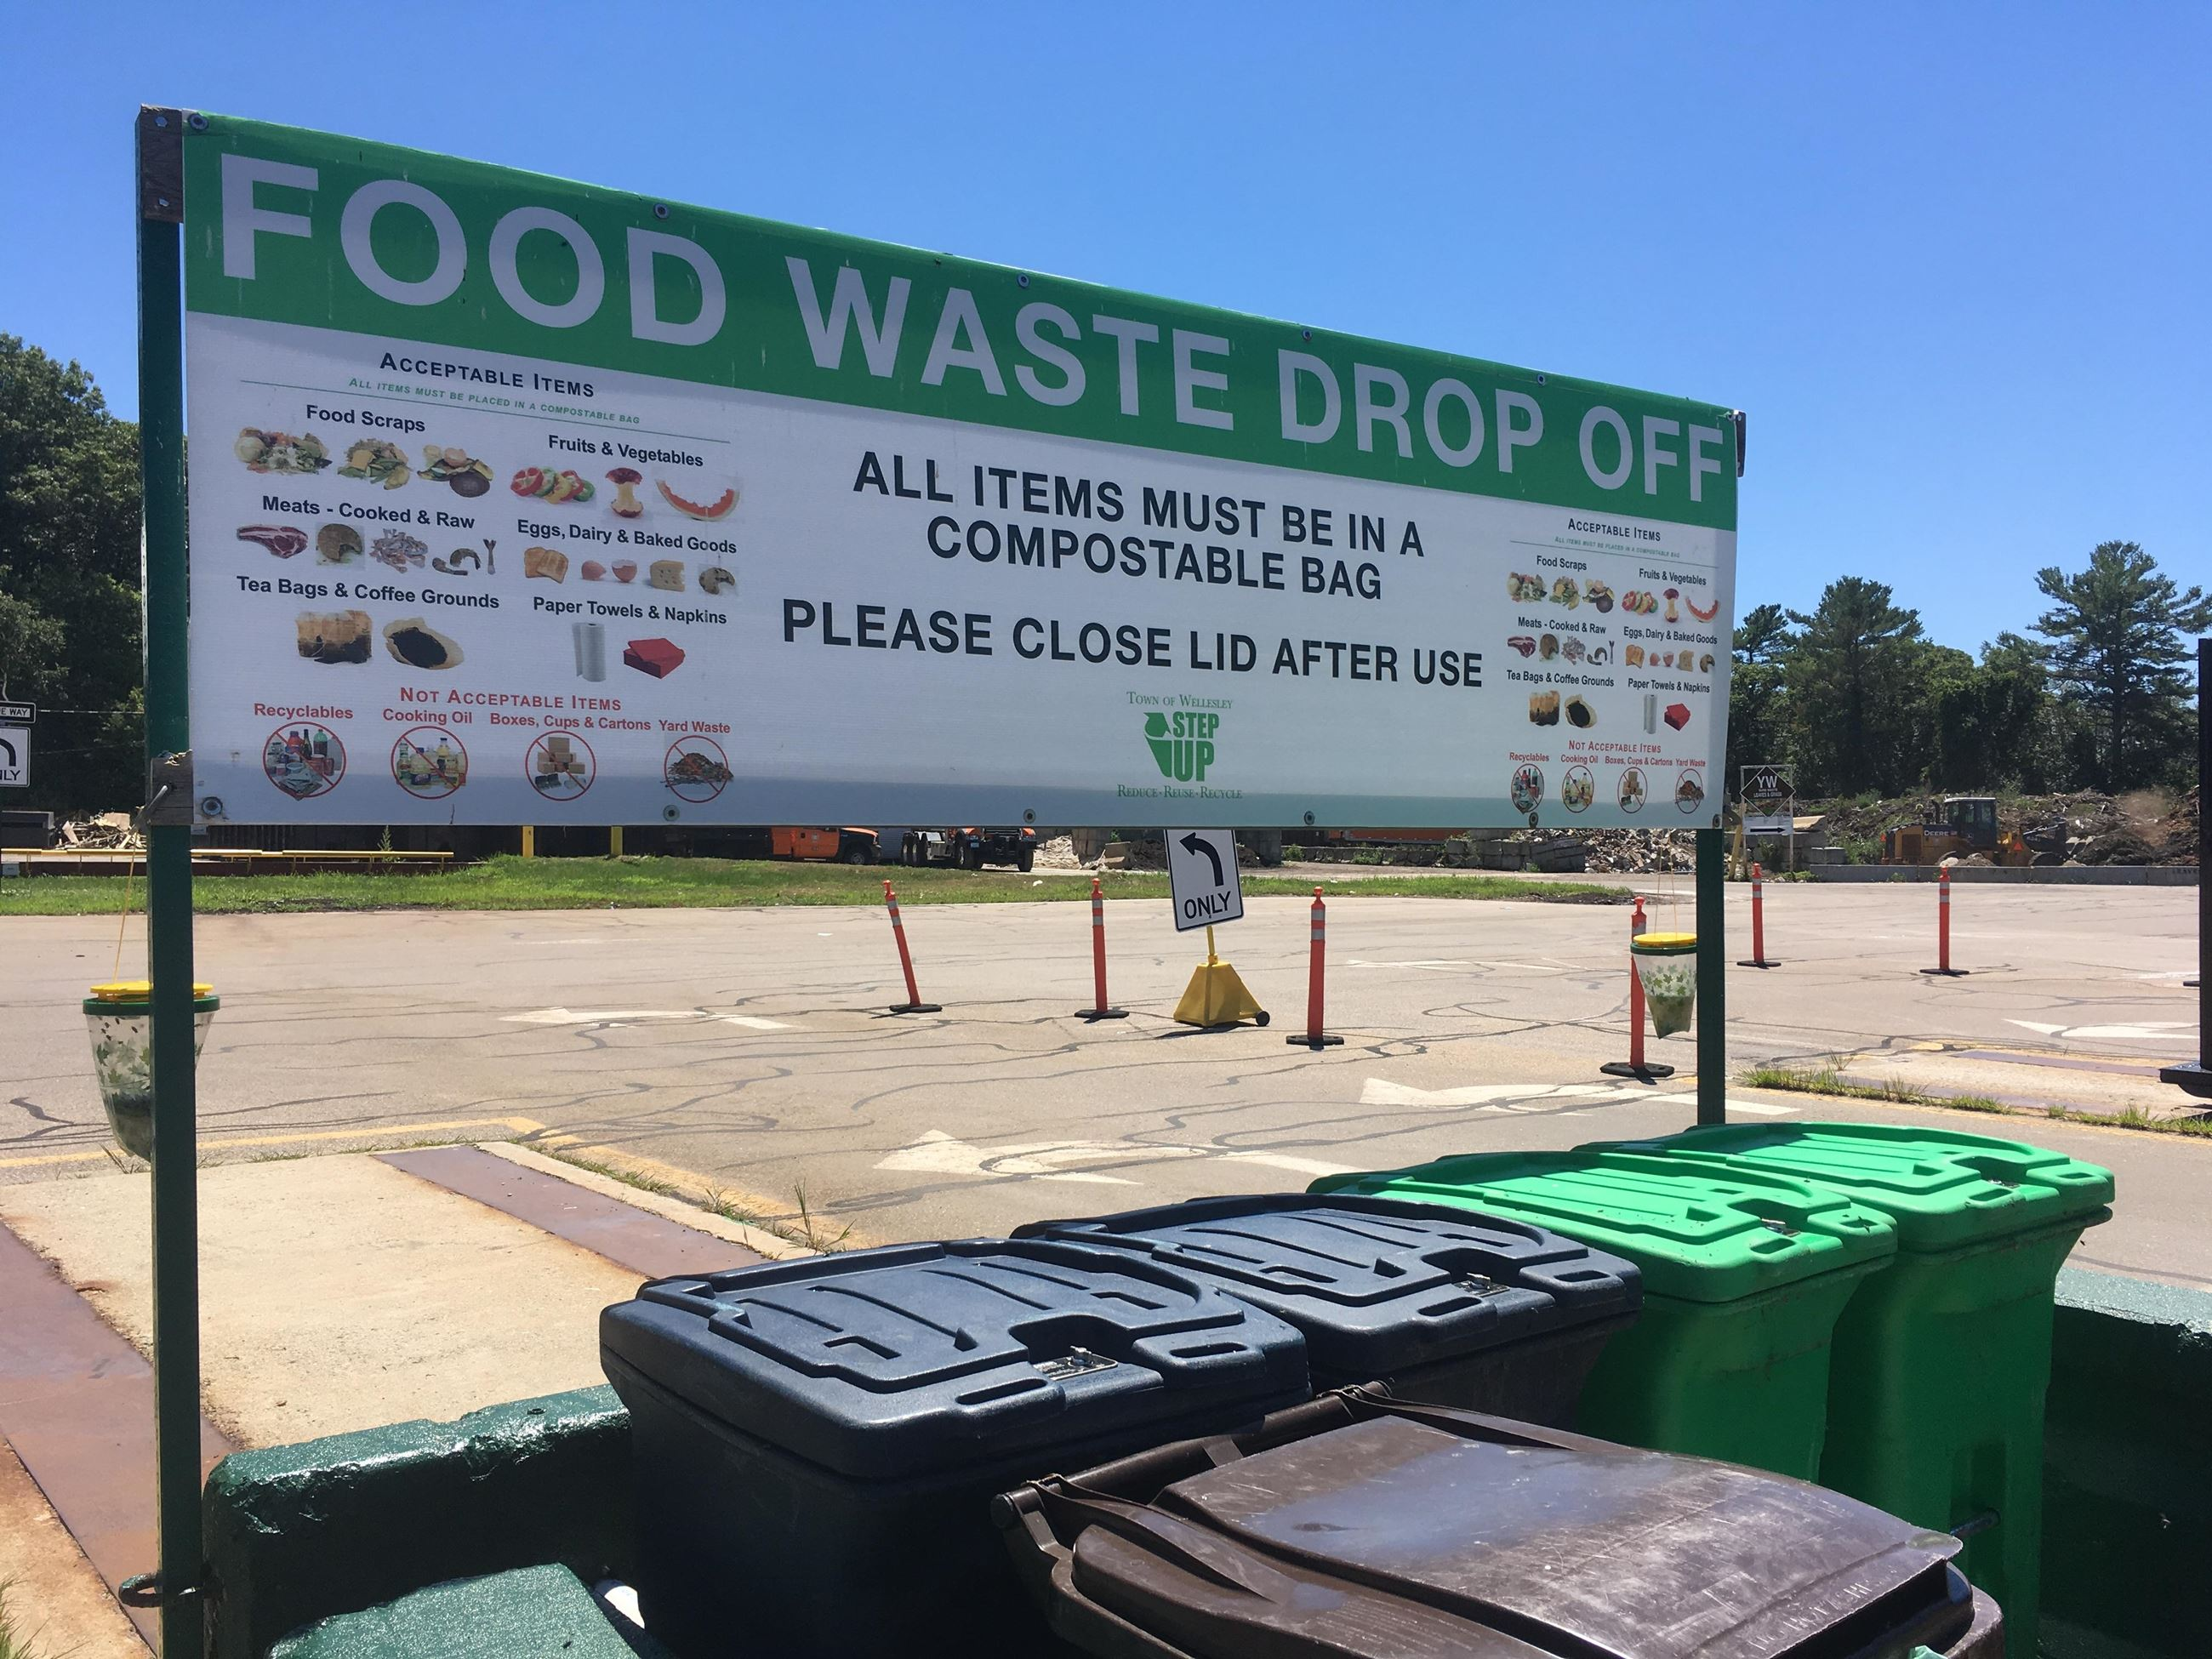 RDF food waste drop off with sign